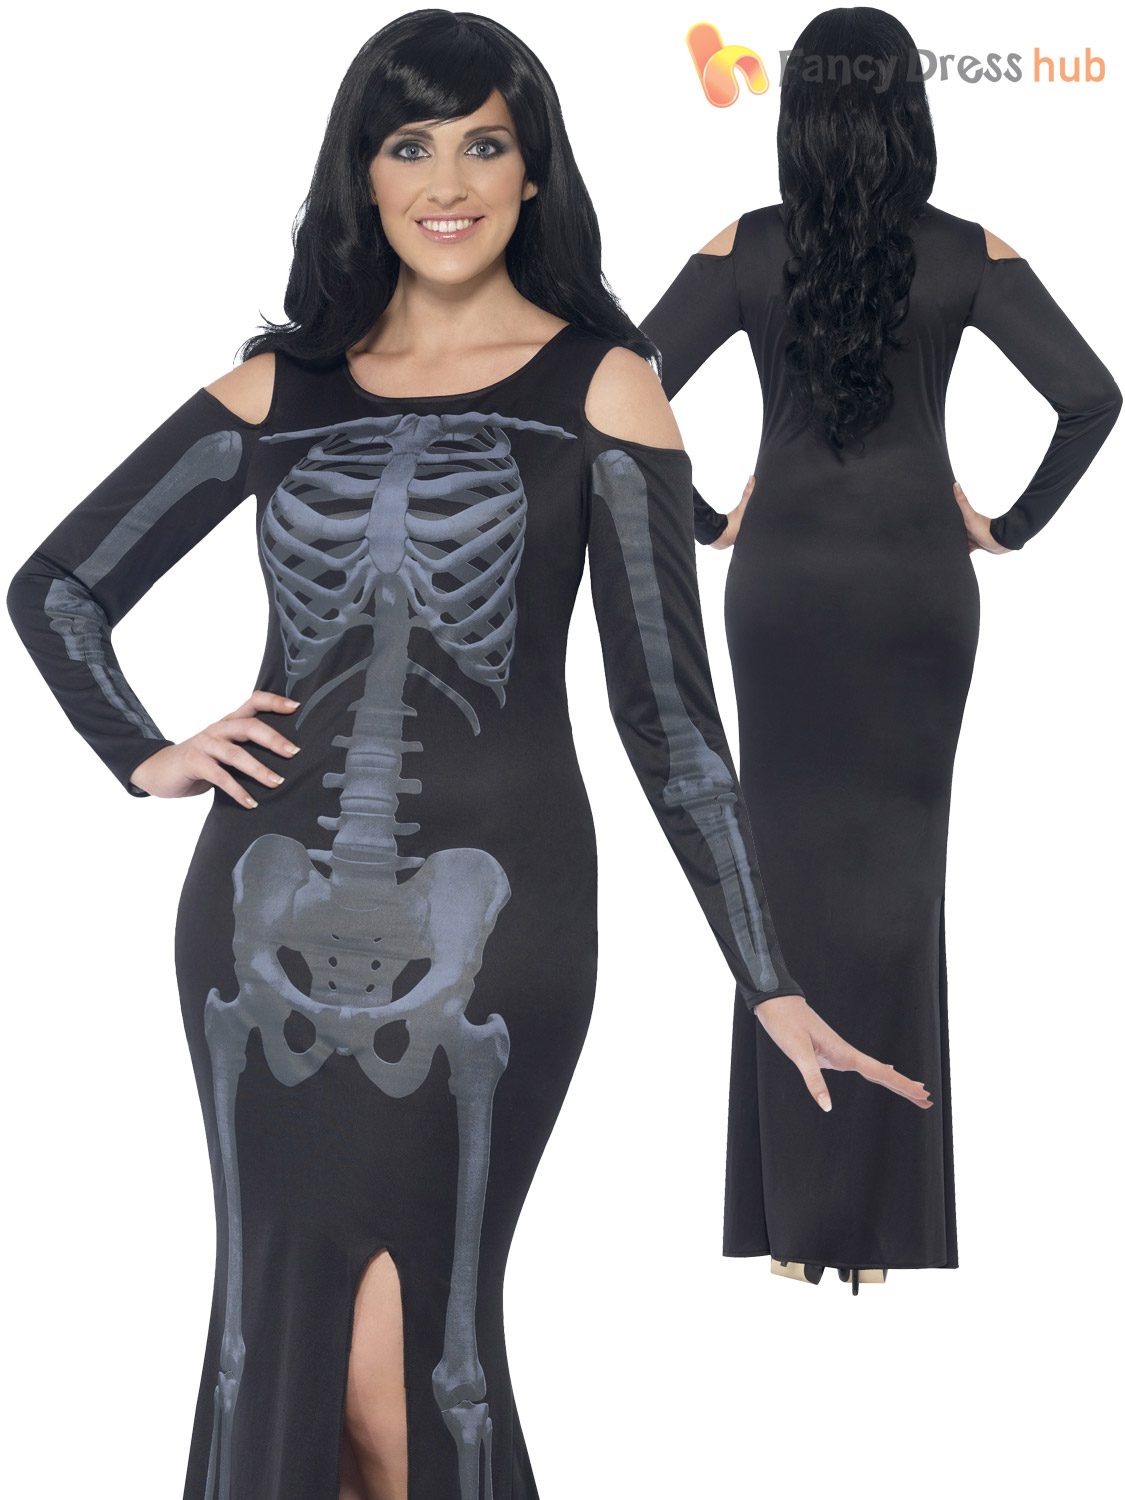 picture 6 of 25 - Size 26 Halloween Costumes